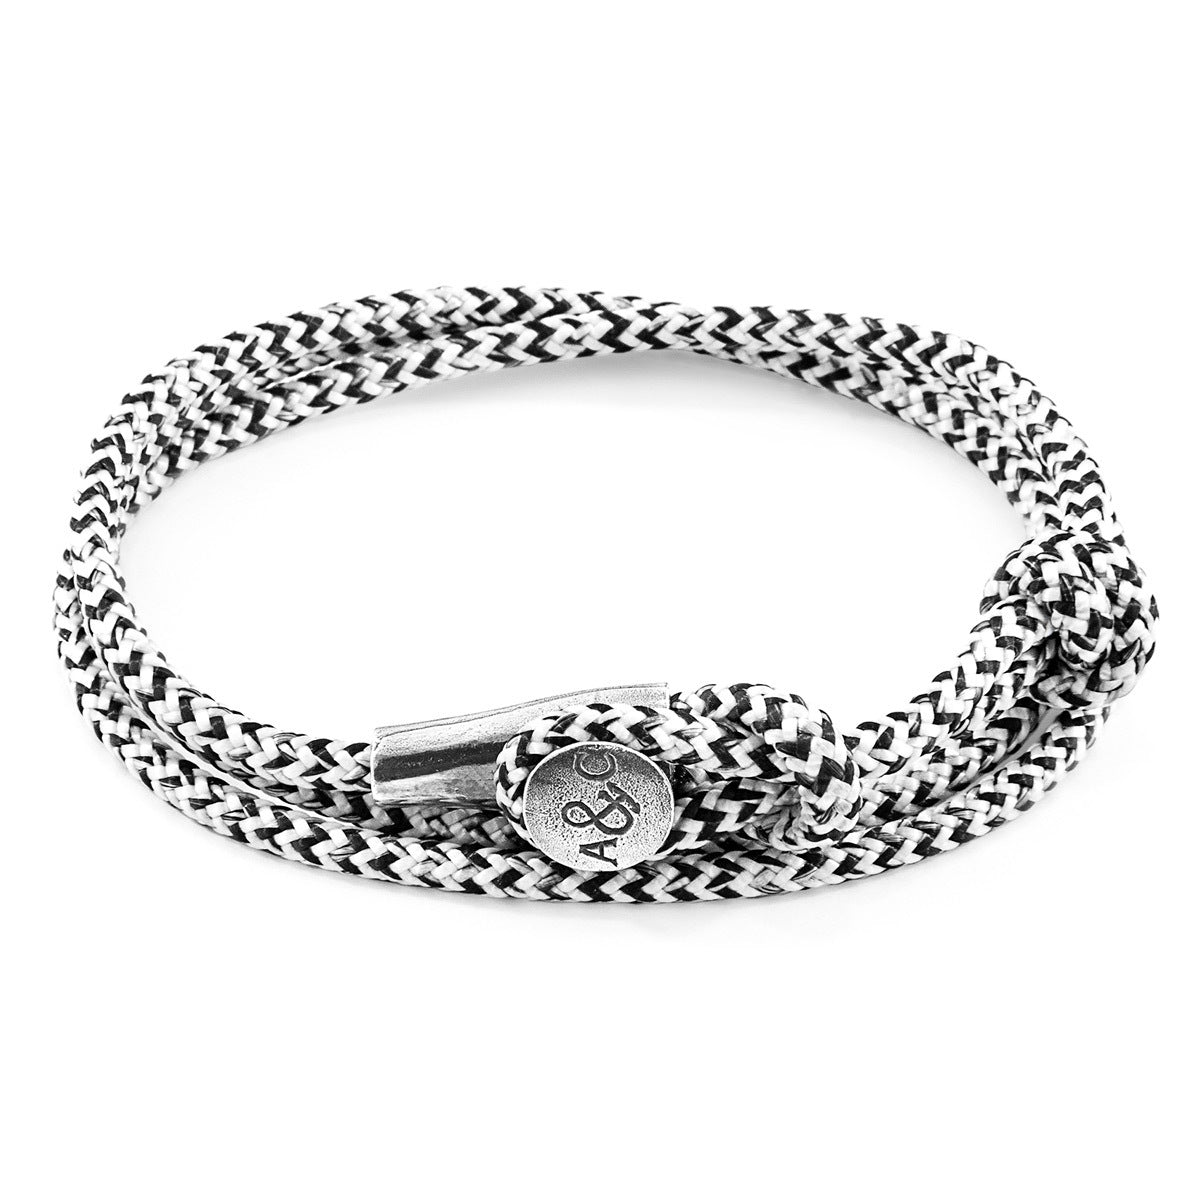 Jewelry-White Noir Dundee Silver & Rope Bracelet